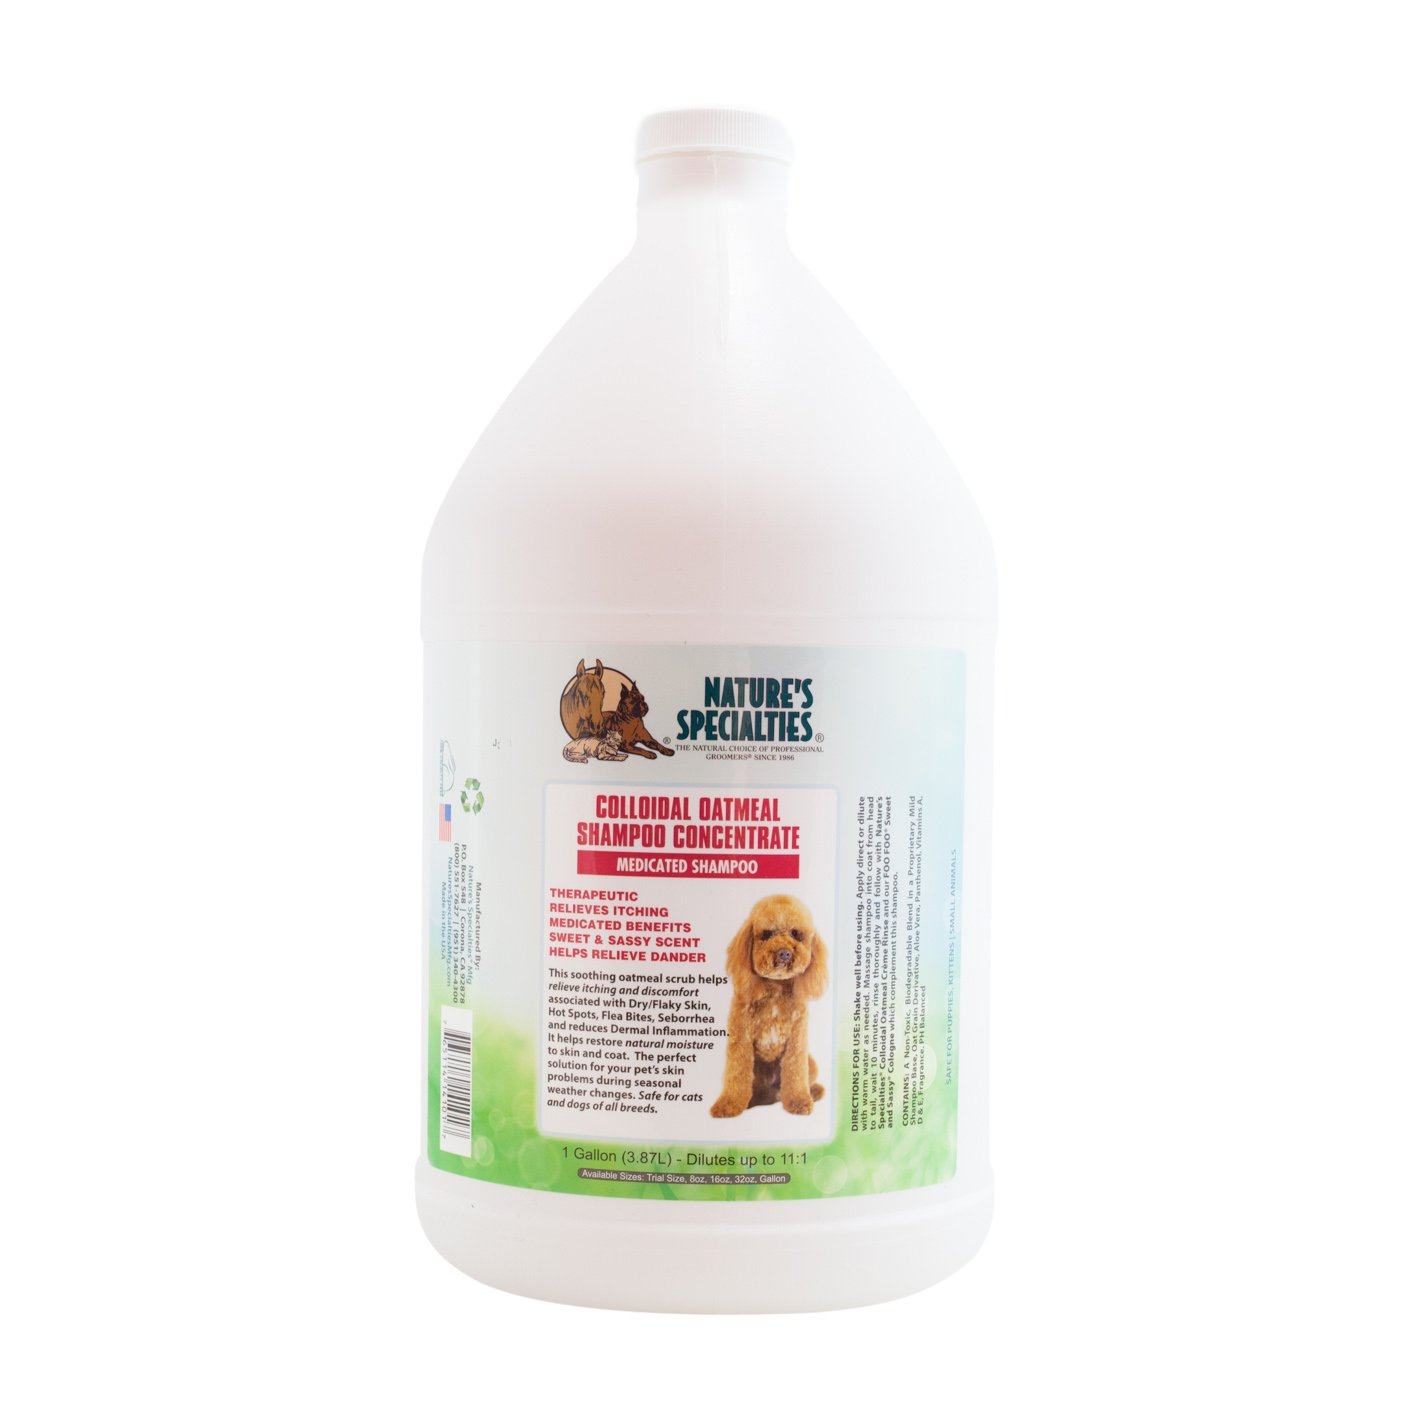 Nature's Specialties Colloidal Oatmeal Pet Shampoo